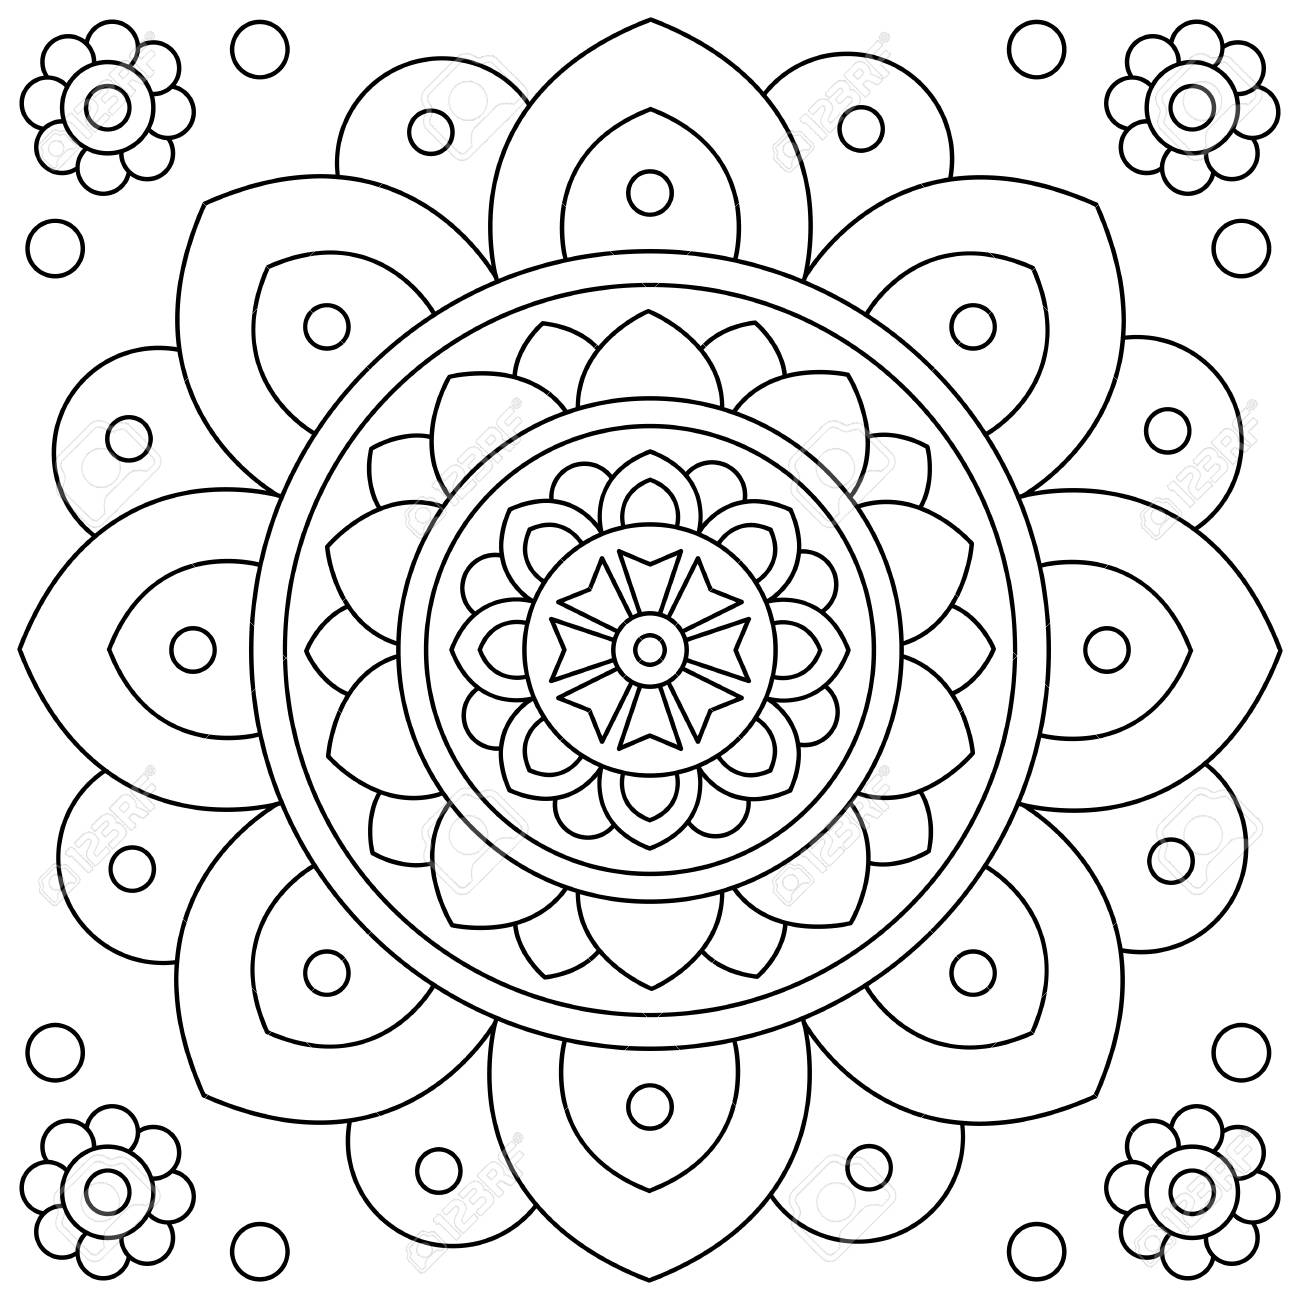 - Flower. Mandala. Coloring Page. Black And White Vector